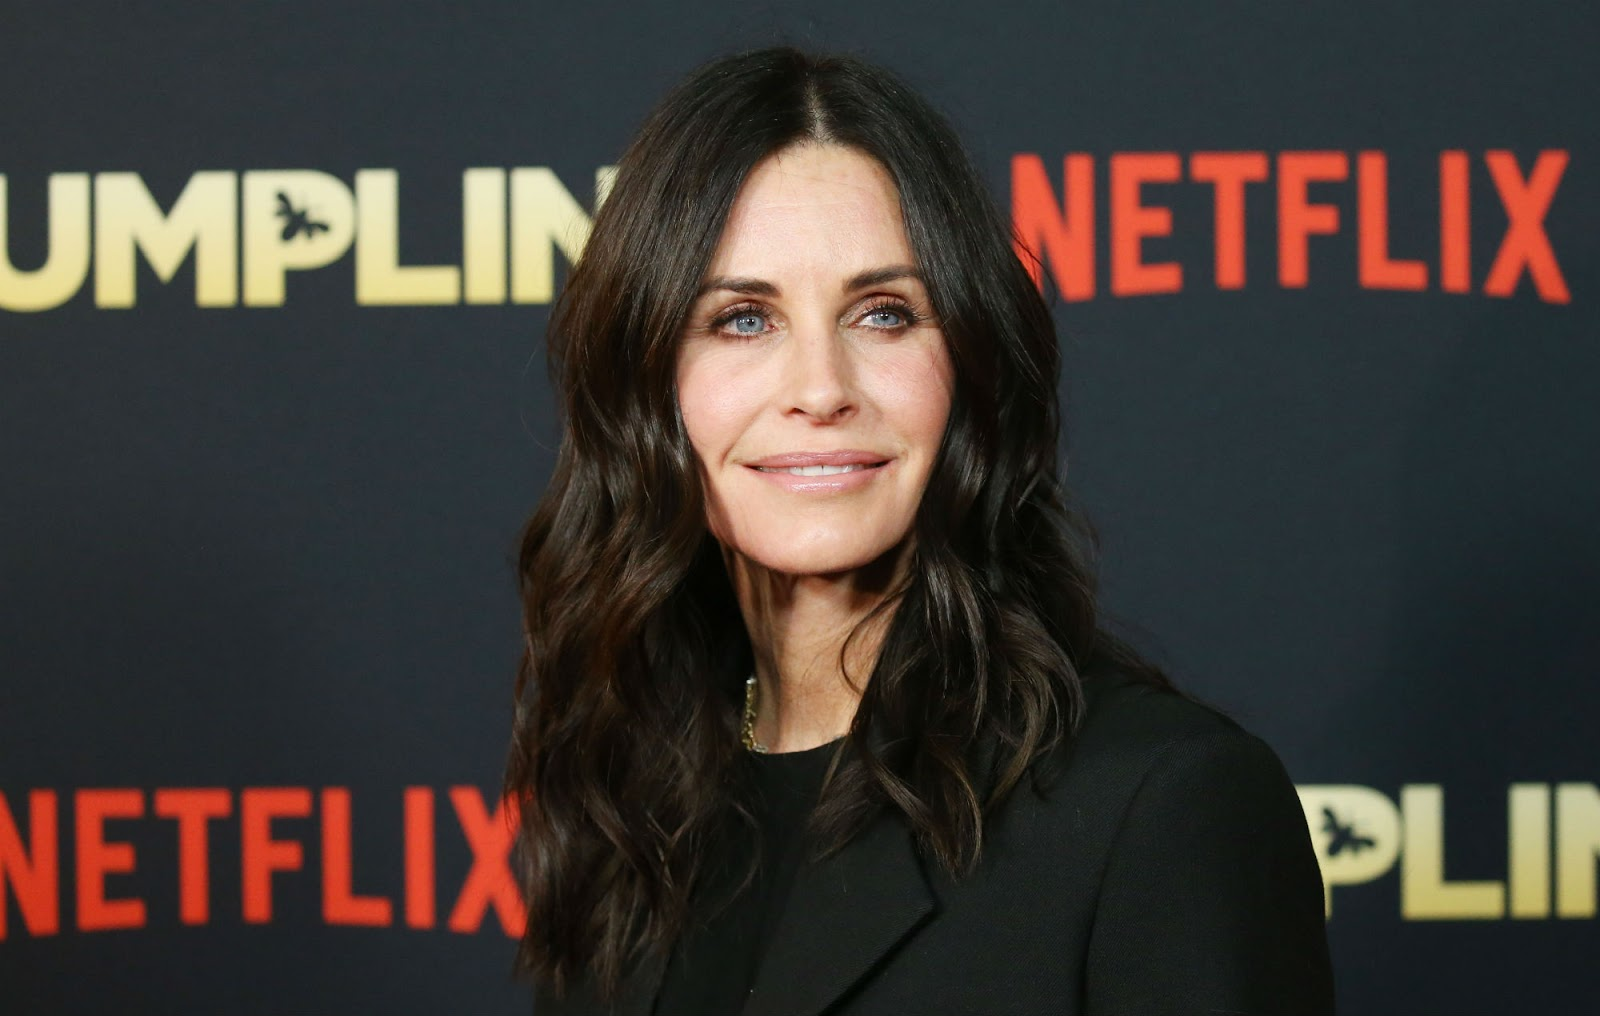 Courteney Cox poses at the red carpet event for Dumplin.